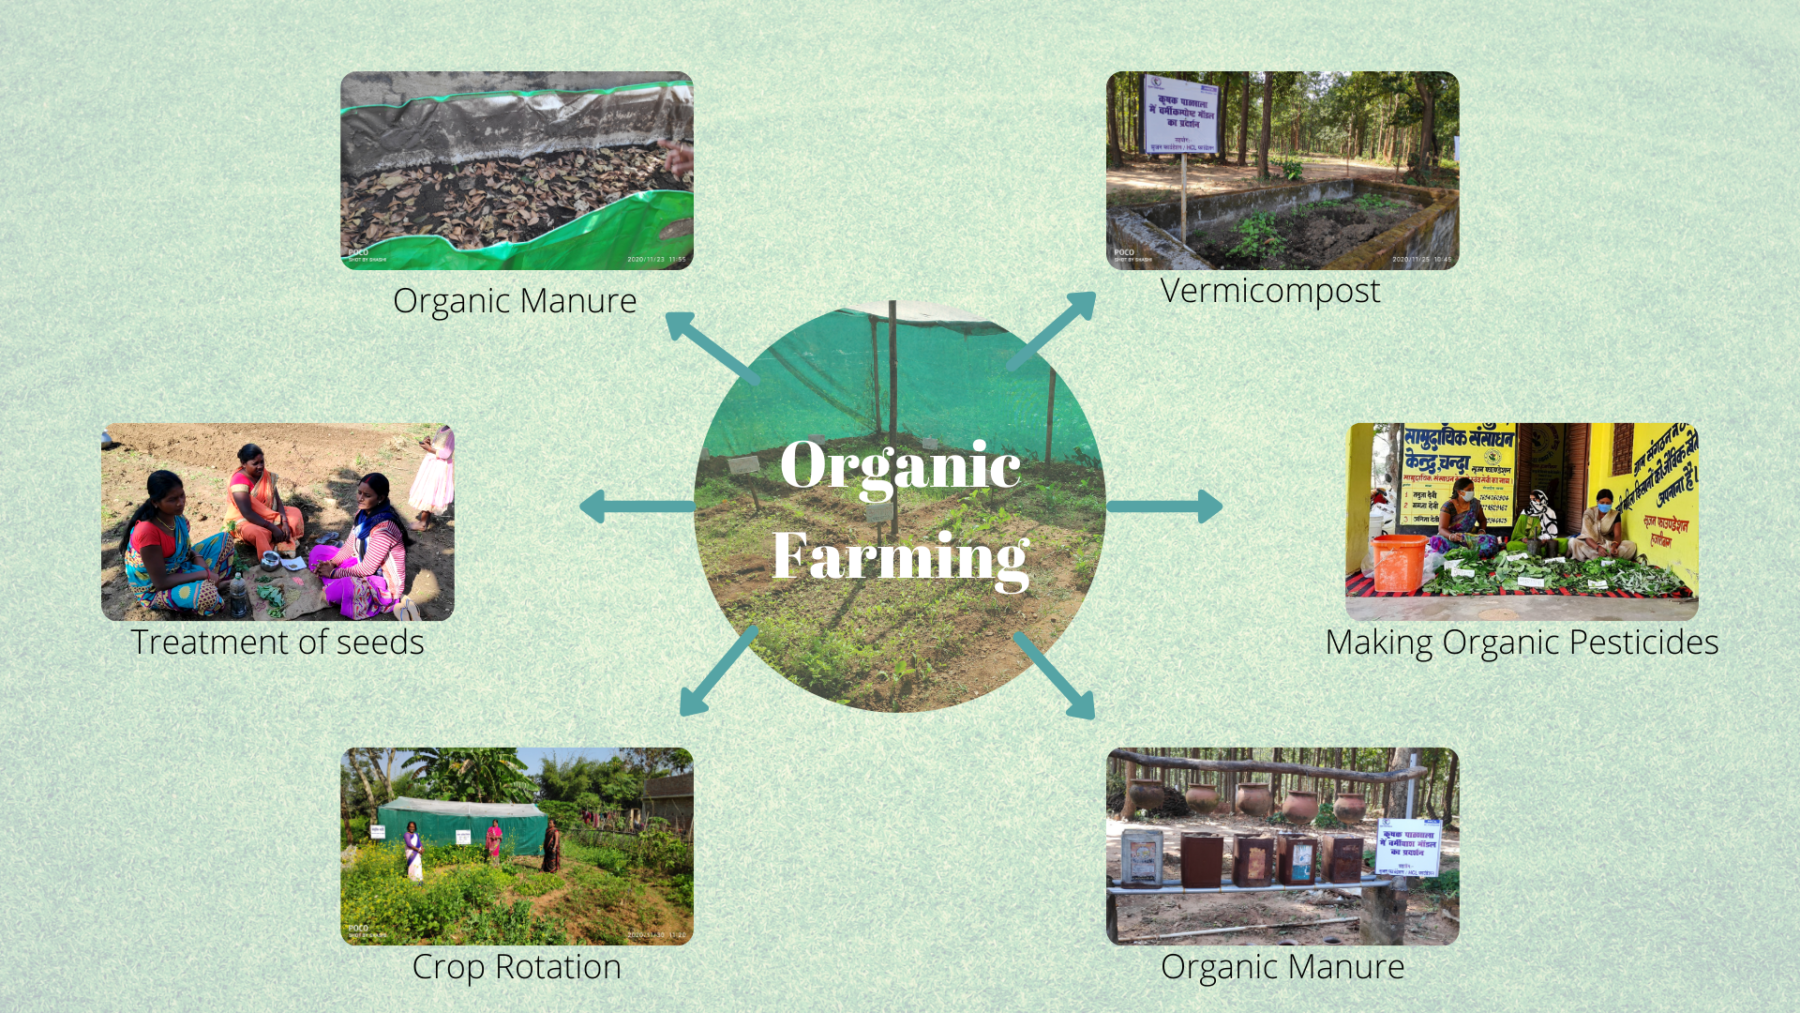 Components of Organic Farming practice